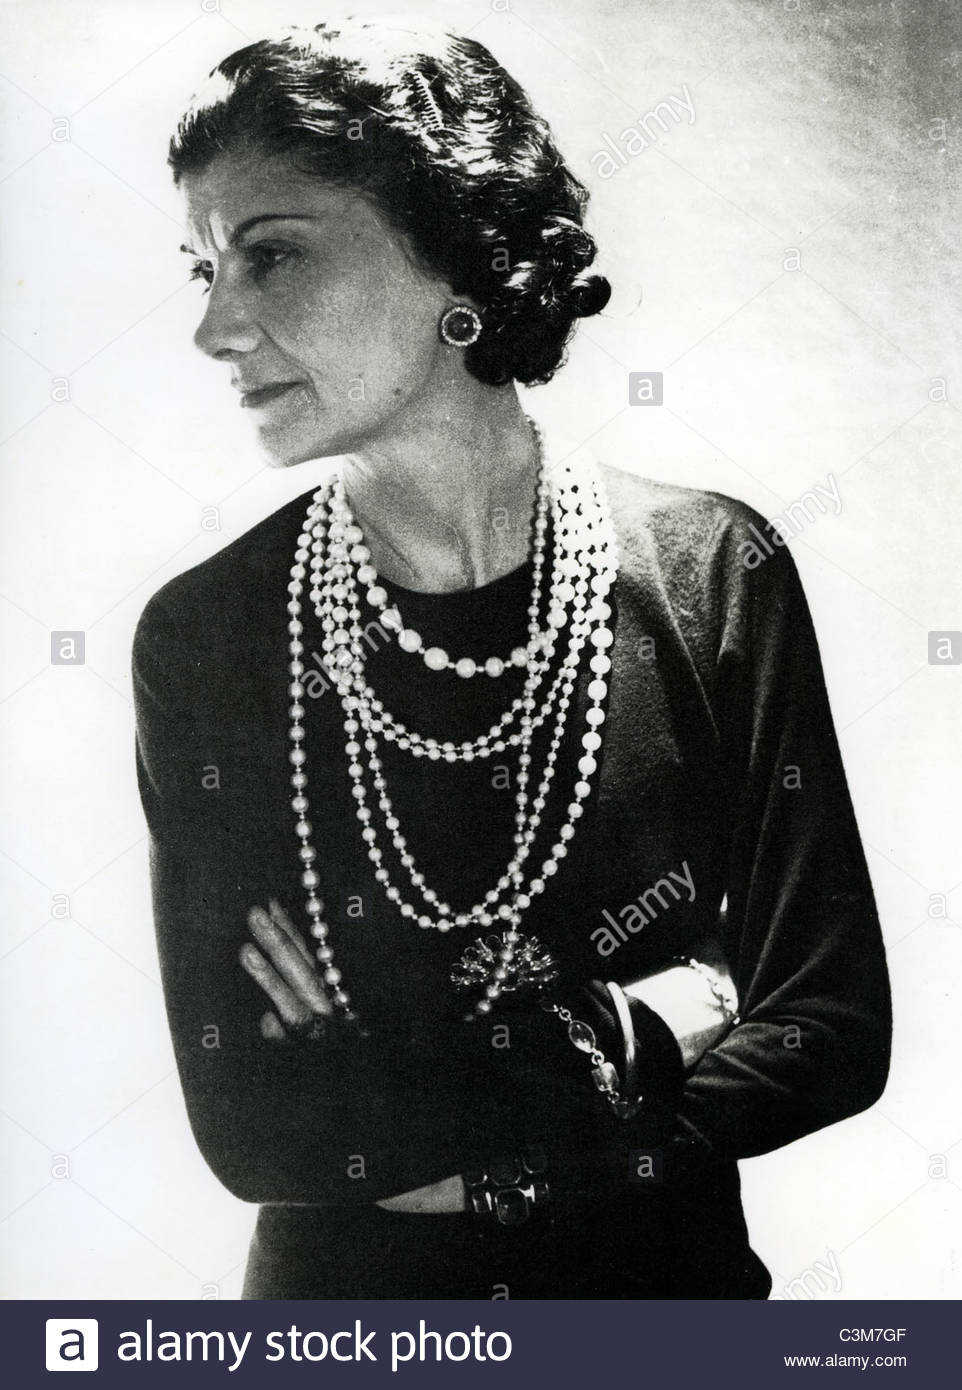 Fashion Designer Coco Chanel Biography